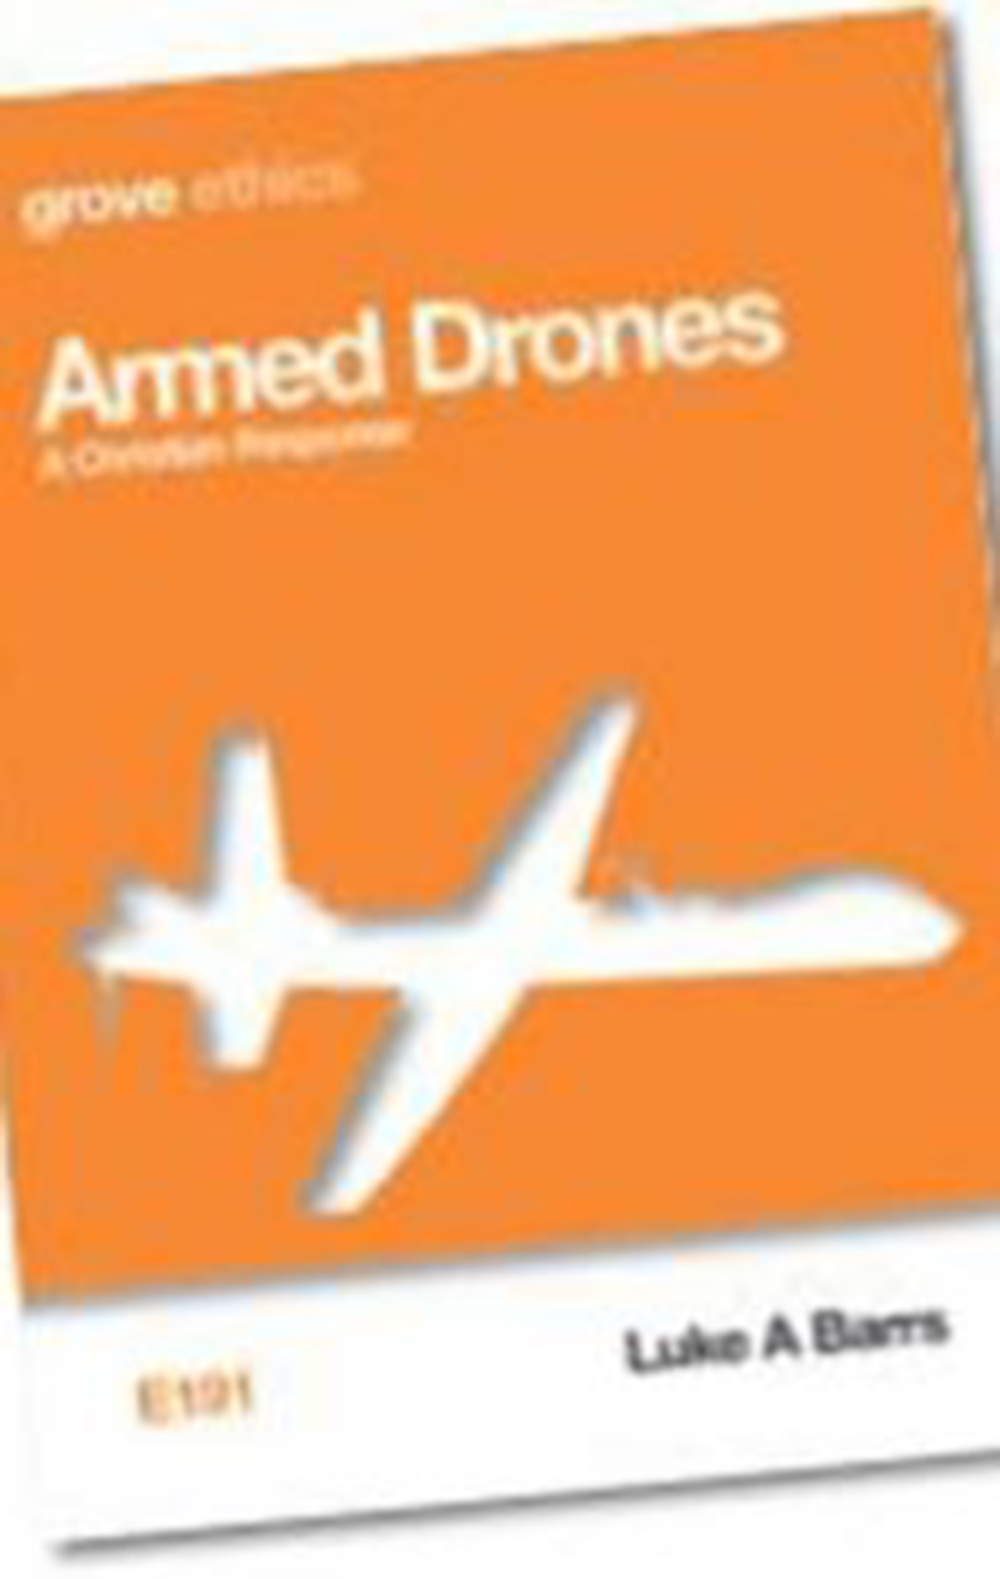 Armed Drones: a Christian Response